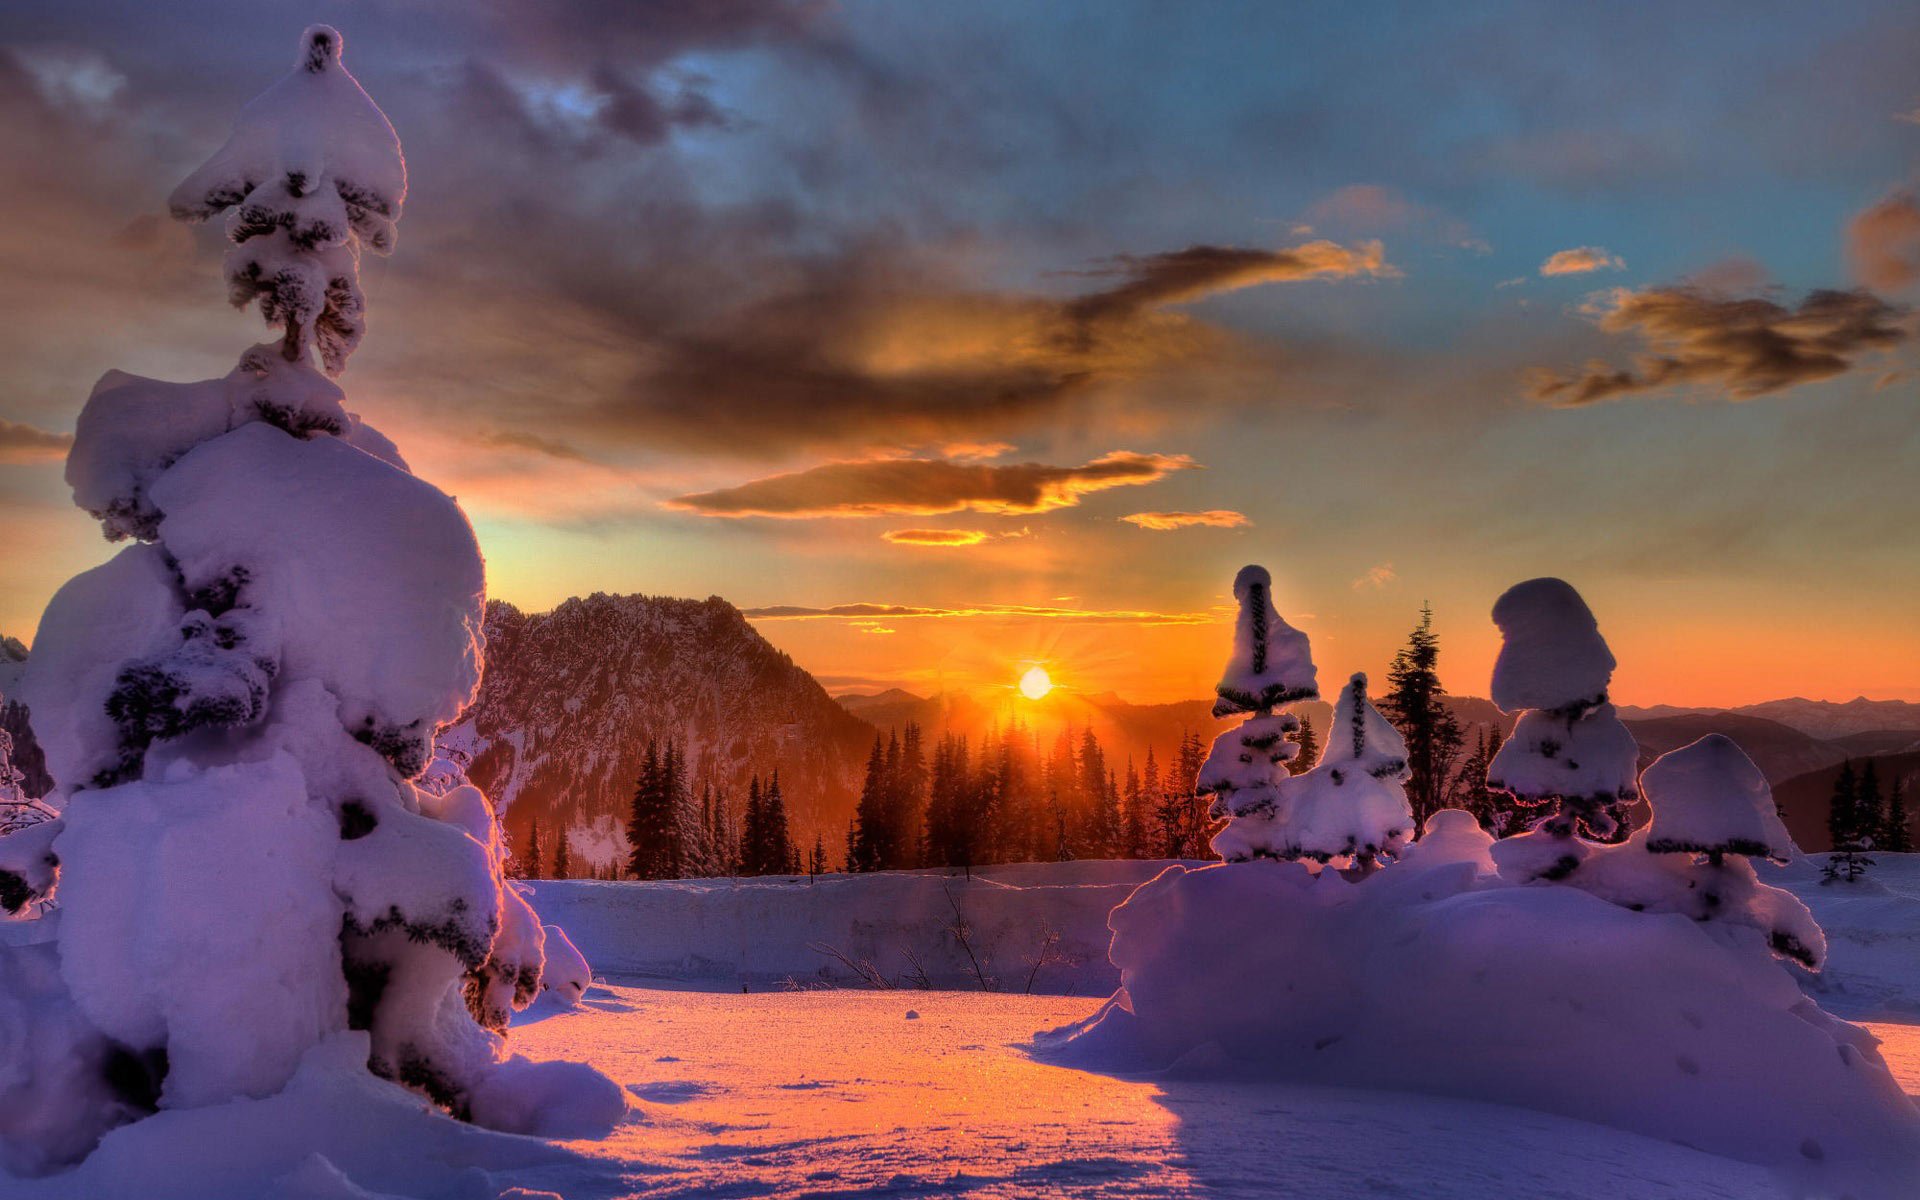 Winter Desktop Backgrounds, wallpaper, Winter Desktop Backgrounds hd ...